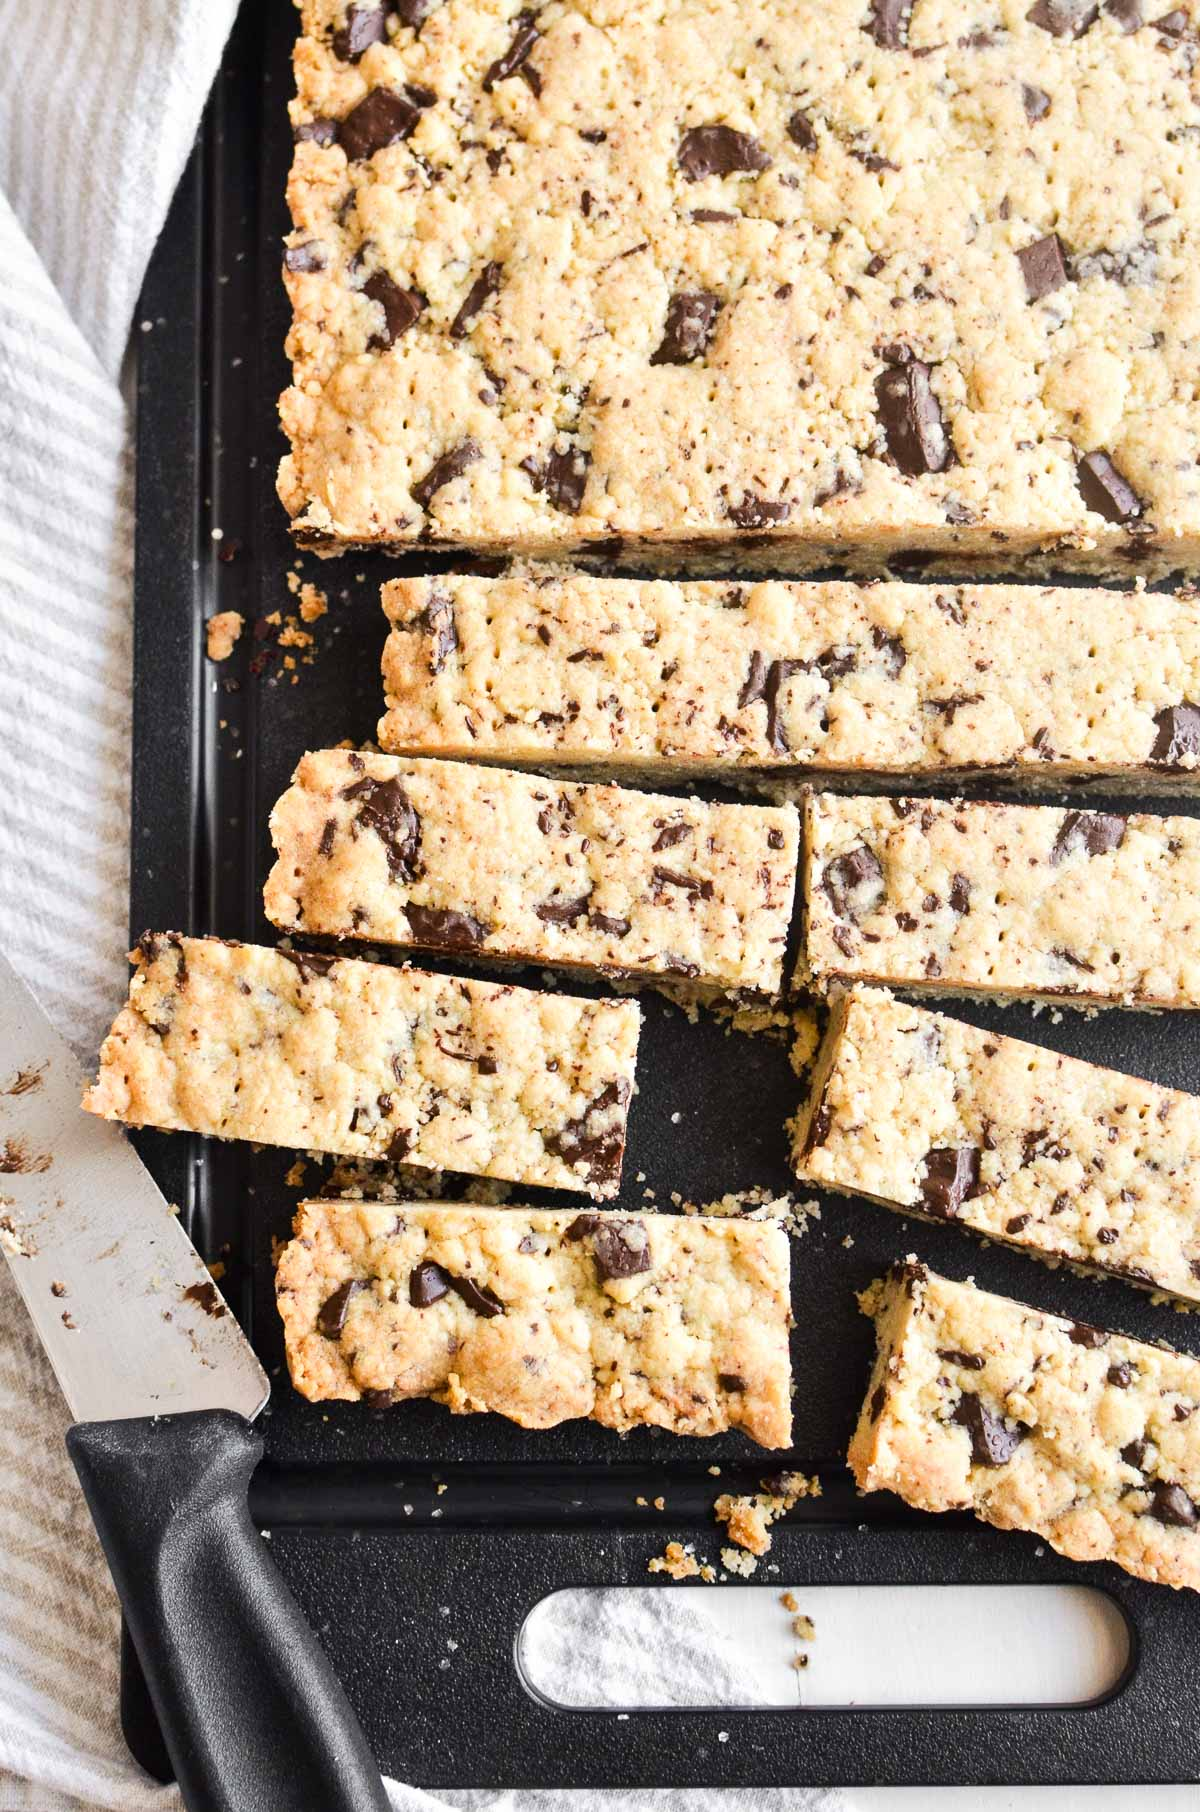 Slicing chocolate chip shortbread cookies on a black cutting board.